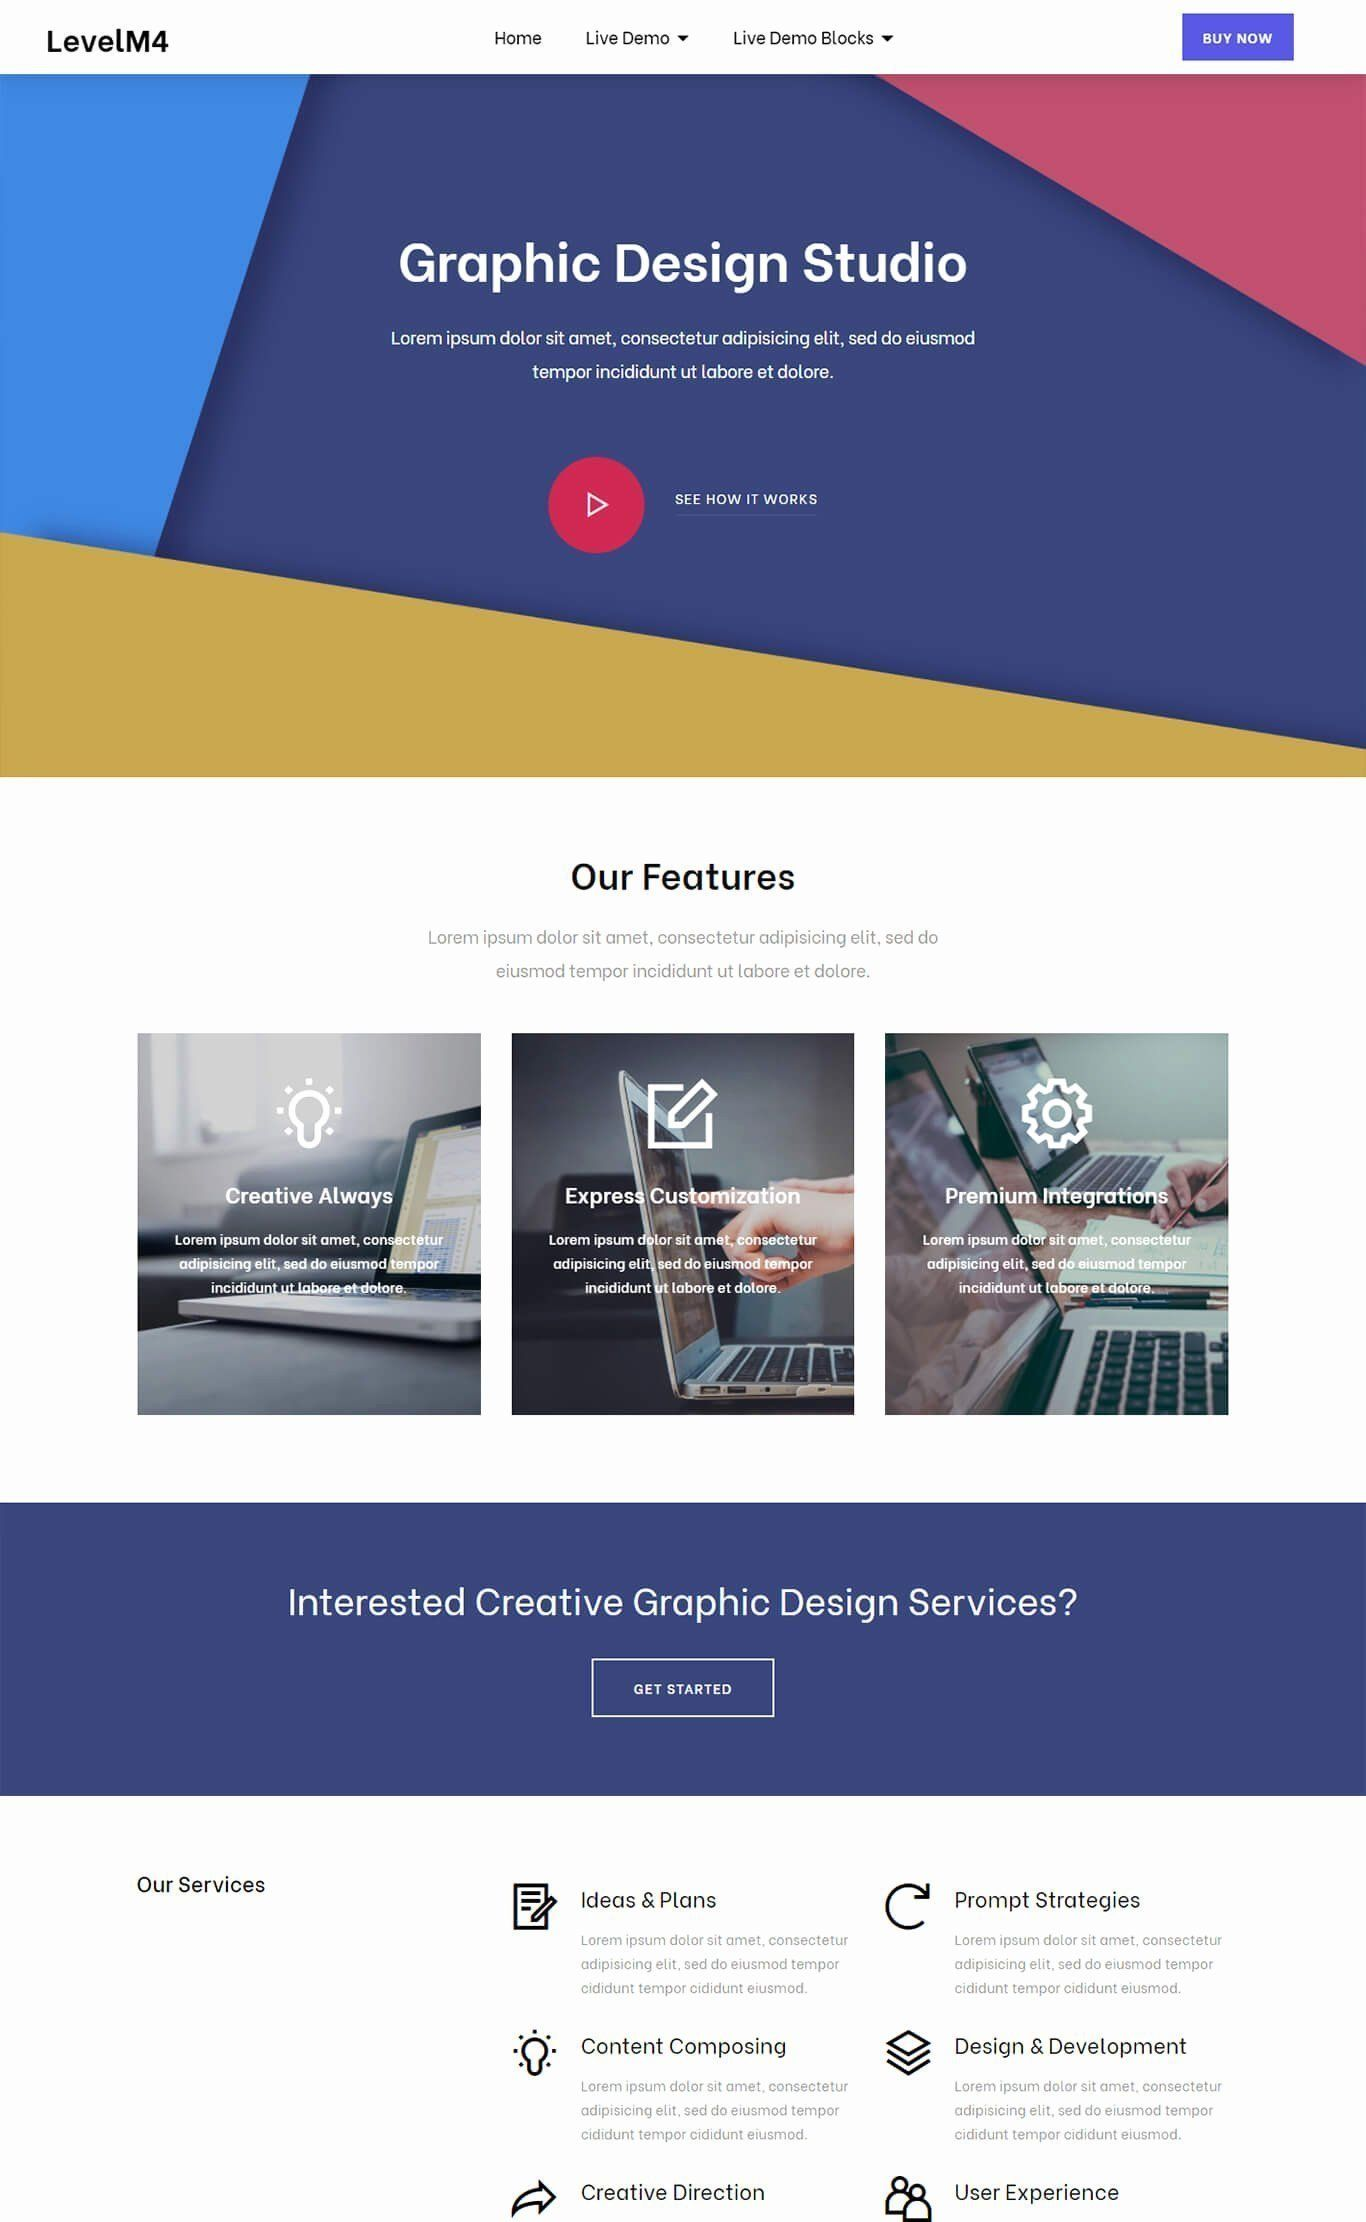 Design Your Own Home Free Software Elegant Best Free Website Builder Software 2020 Design Your Own Home Home Design Software Home Free